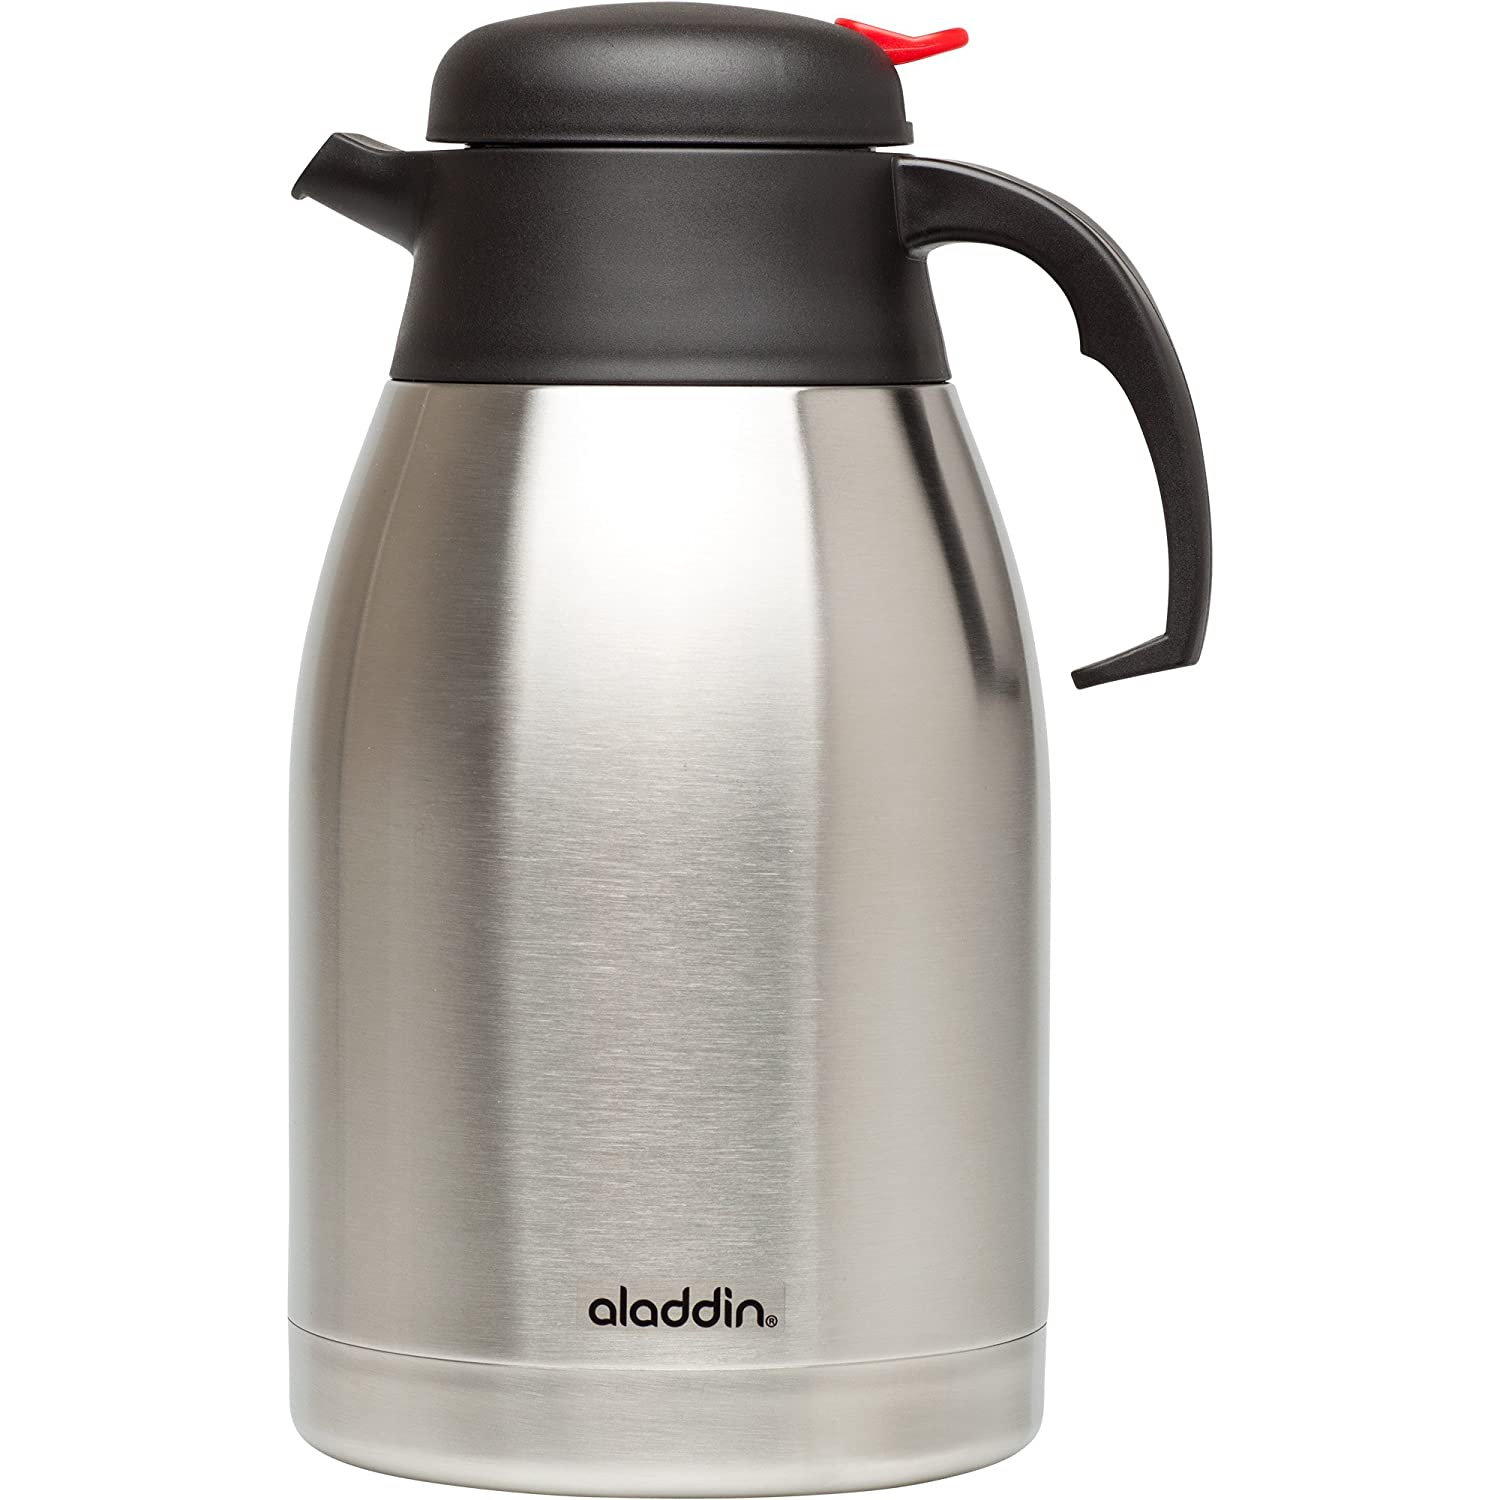 Aladdin Stainless Steel Insulated Carafe 2L (68oz) 10-01240-003